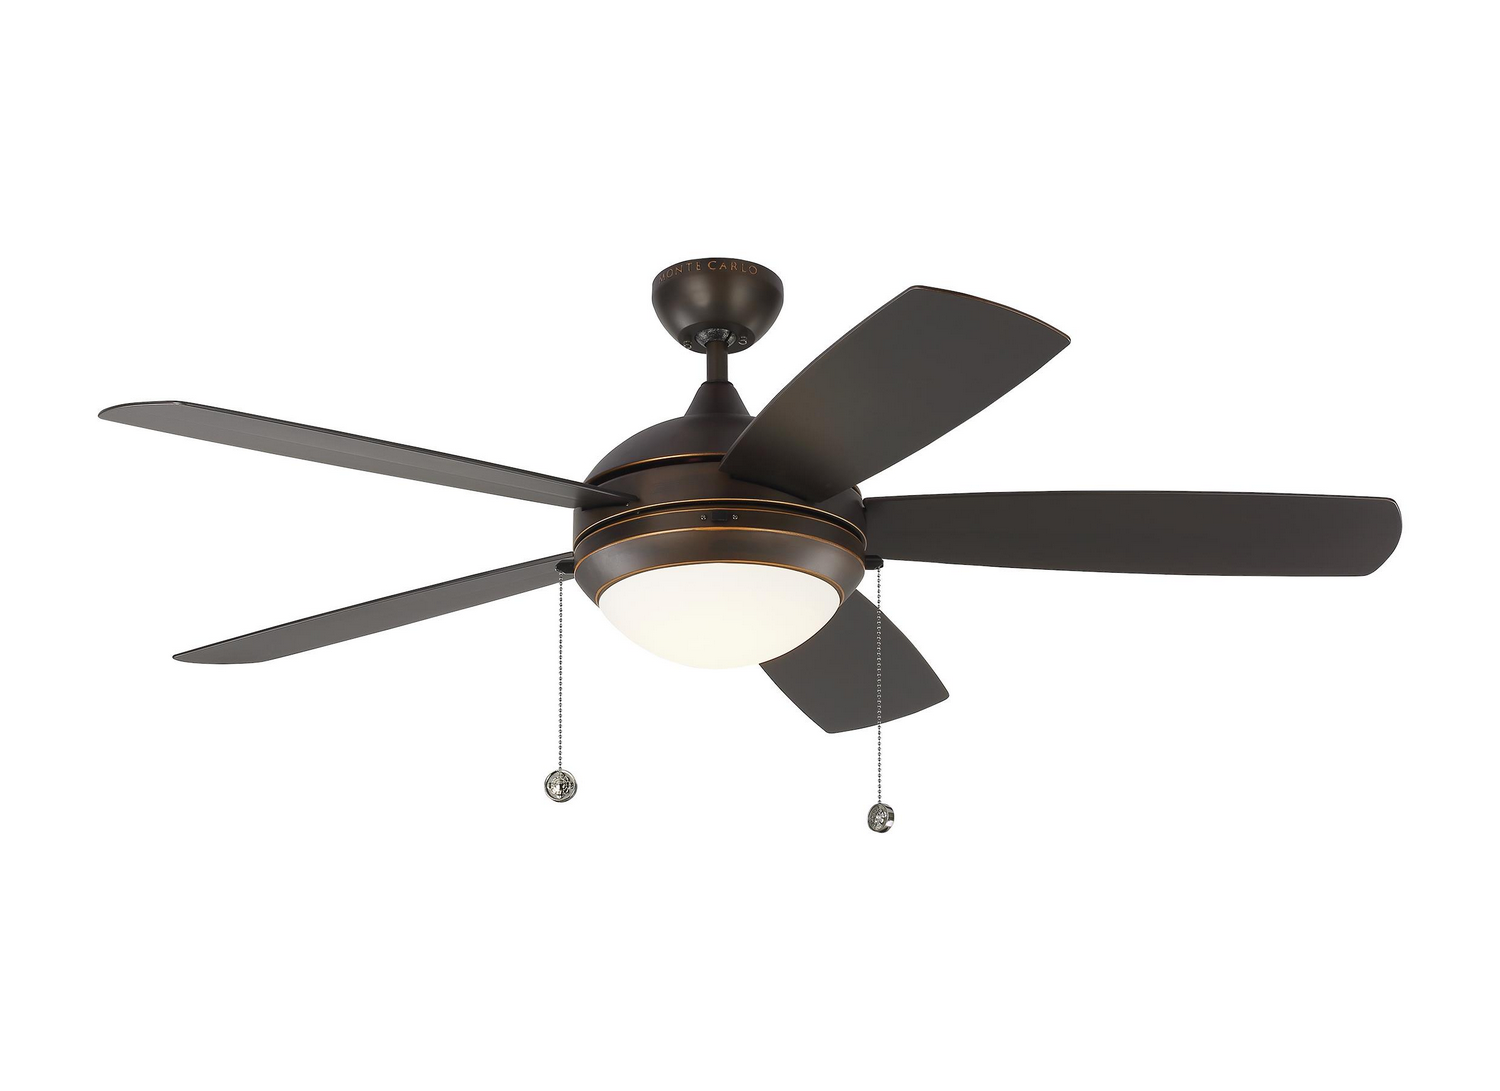 52 inchCeiling Fan from the Discus Outdoor collection by Monte Carlo 5DIW52RBD